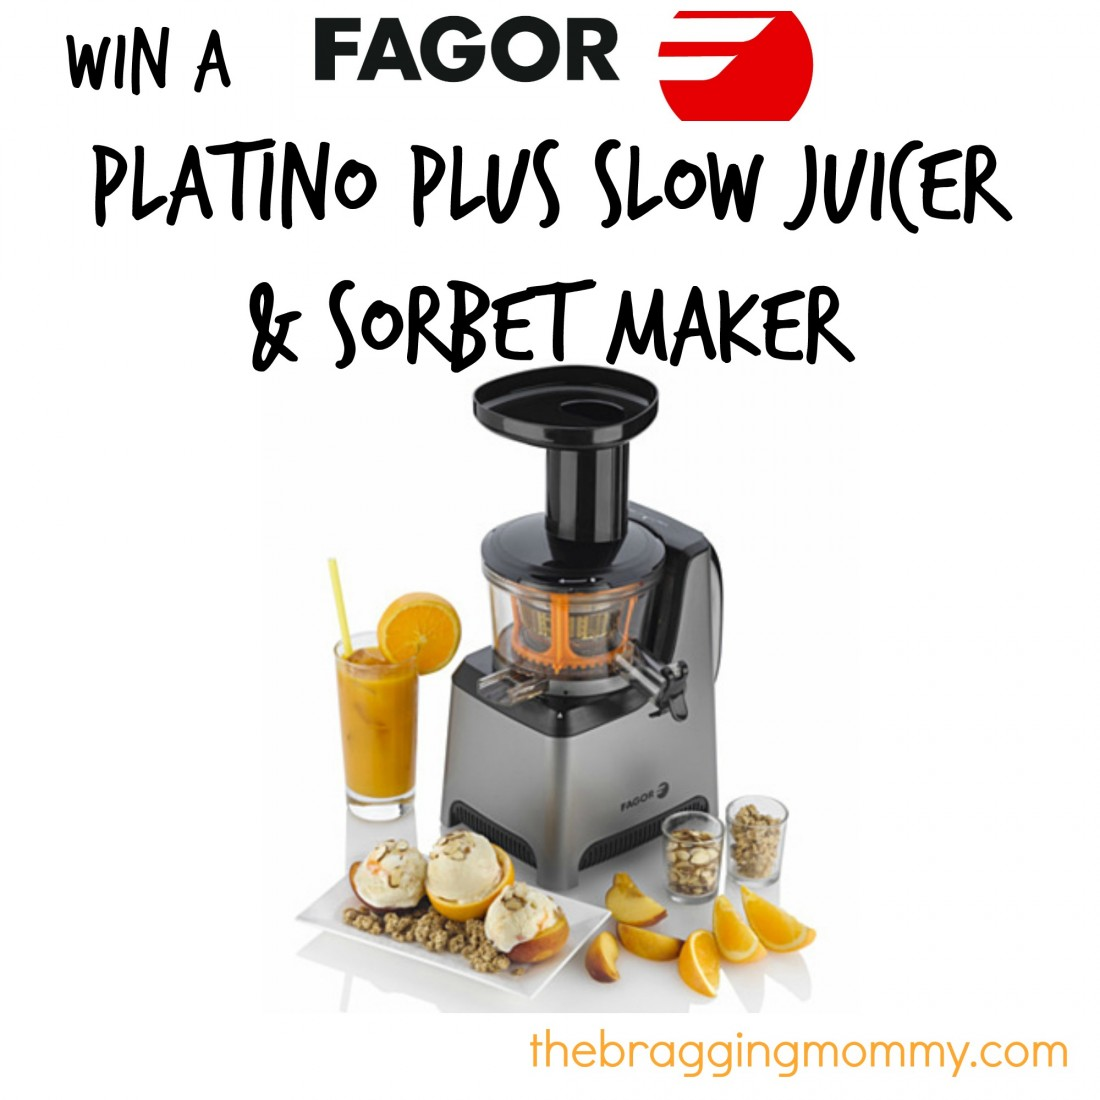 Fagor Slow Juicer Manual : {Brag Worthy Christmas} Fagor America Platino Plus Slow Juicer & Sorbet Maker Review and Giveaway